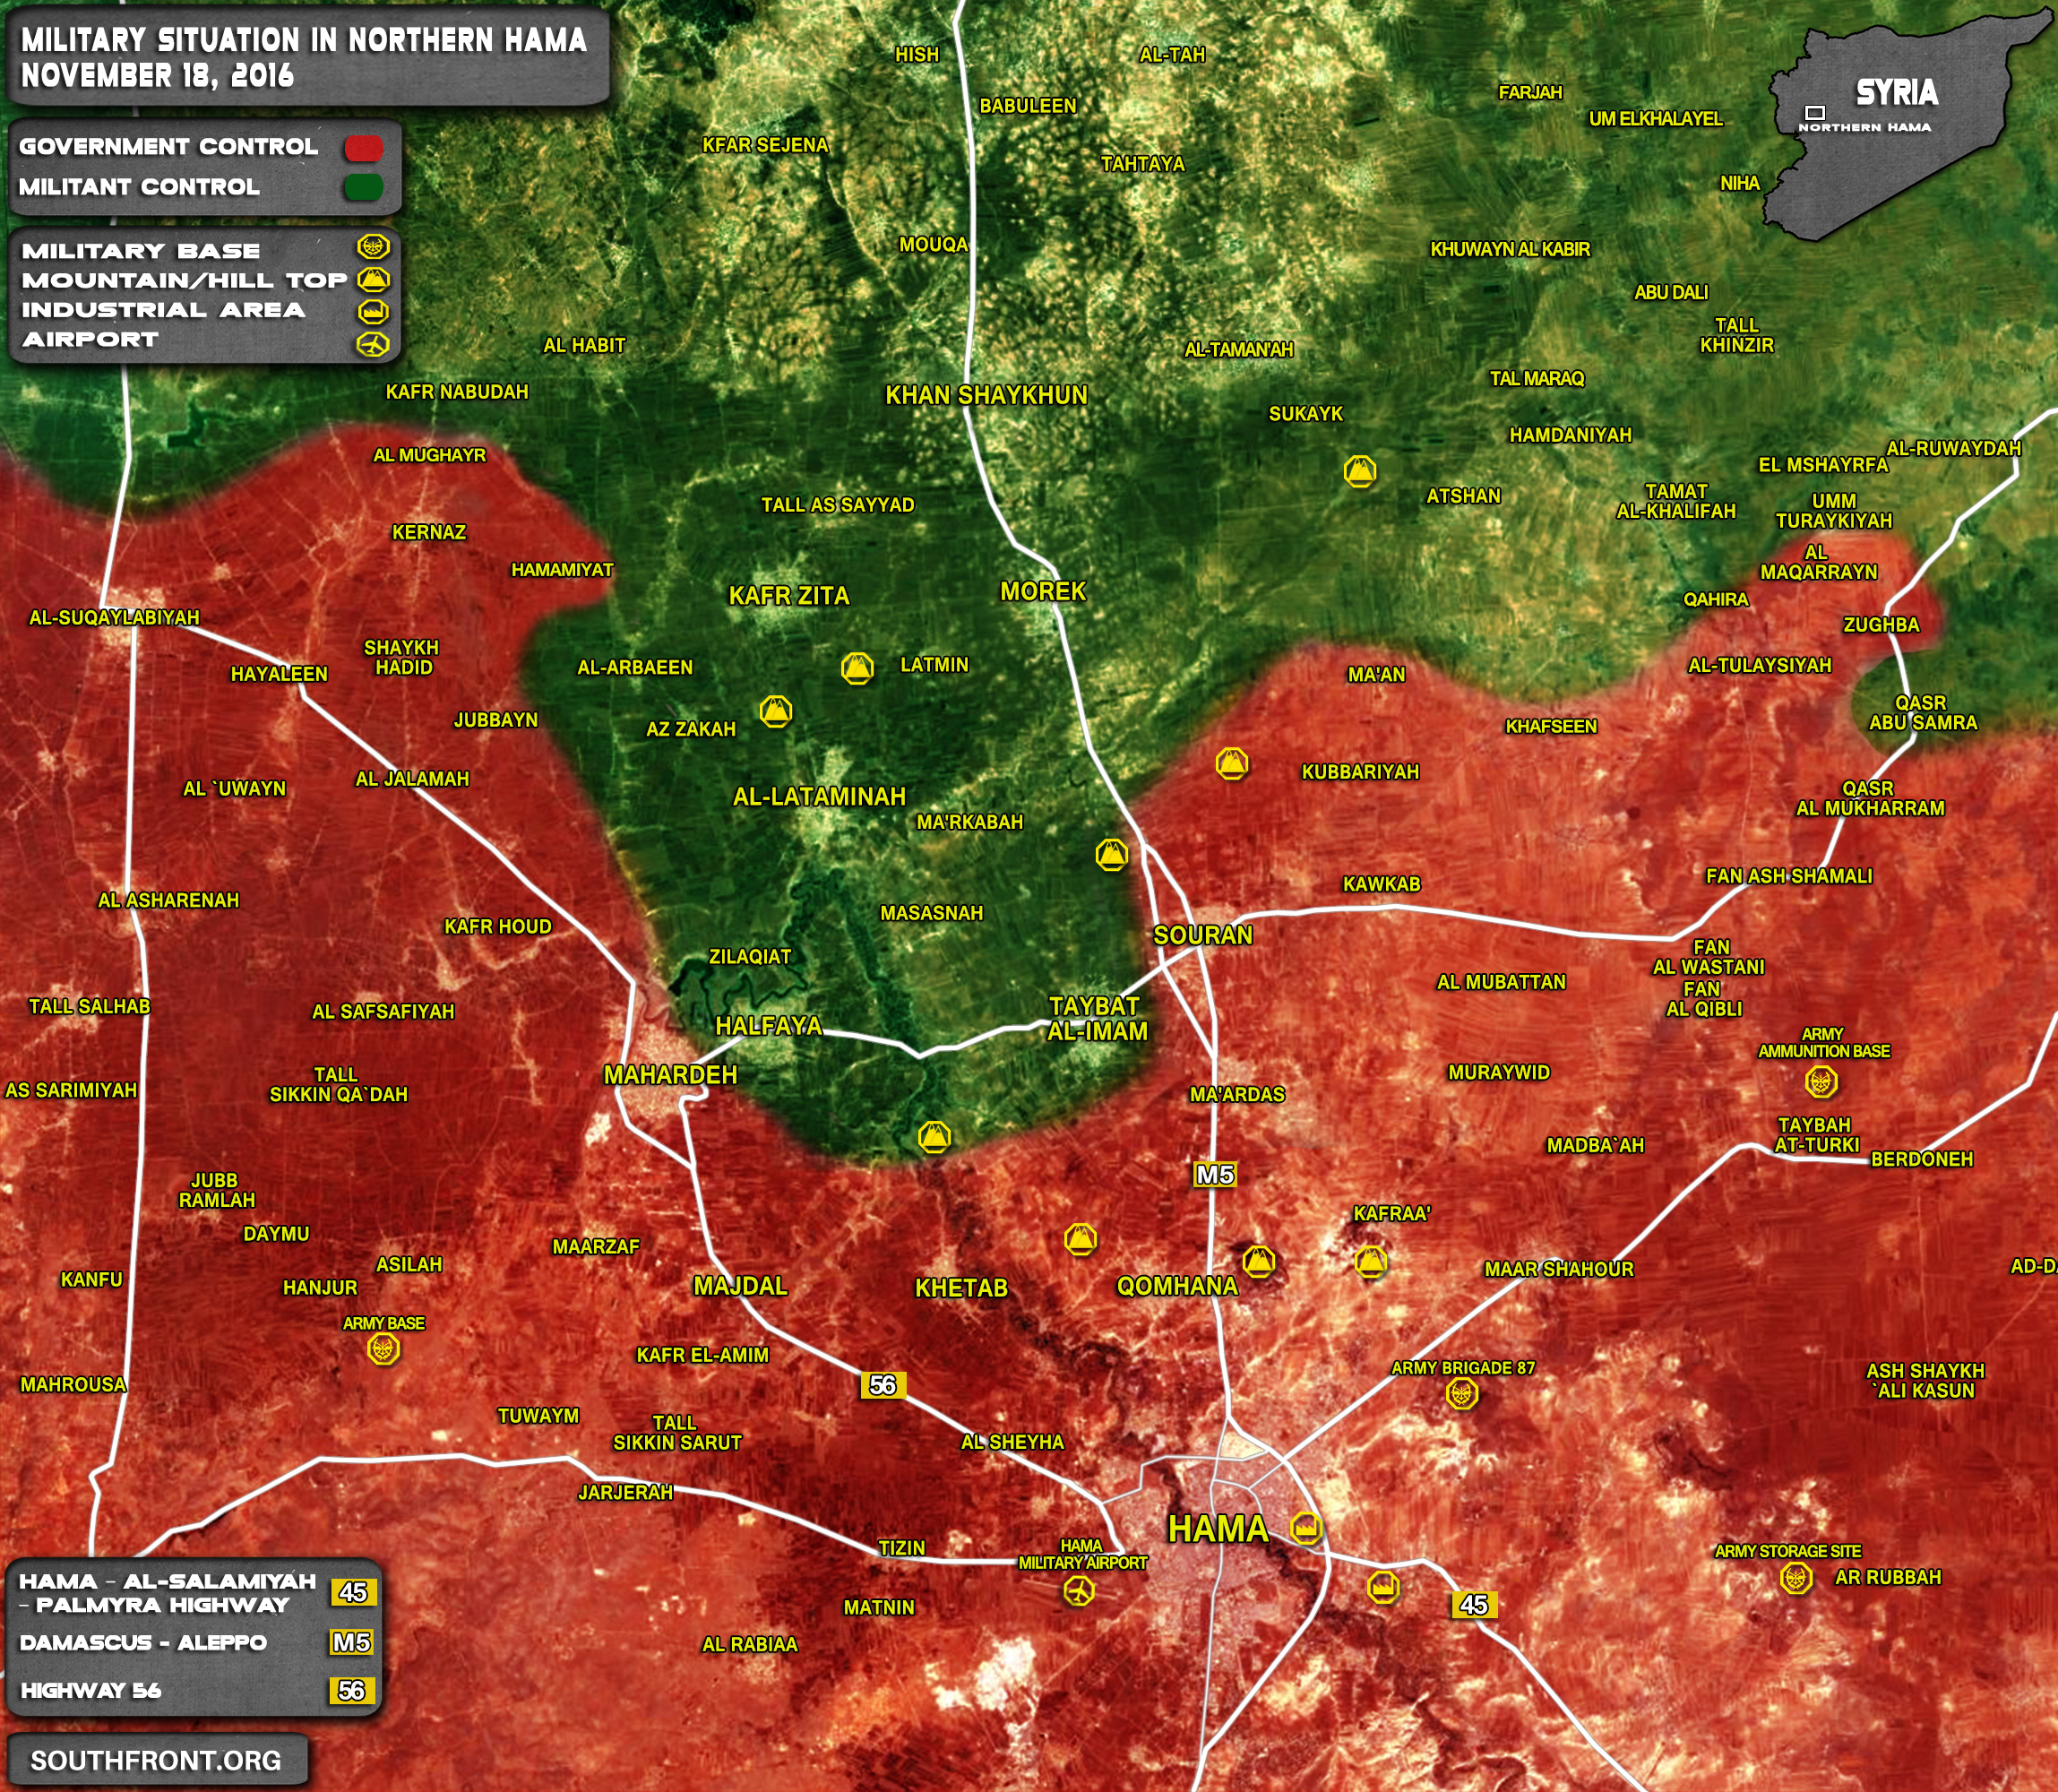 Militants Suffer Major Loses as Result of Syrian Air Strikes in Hama